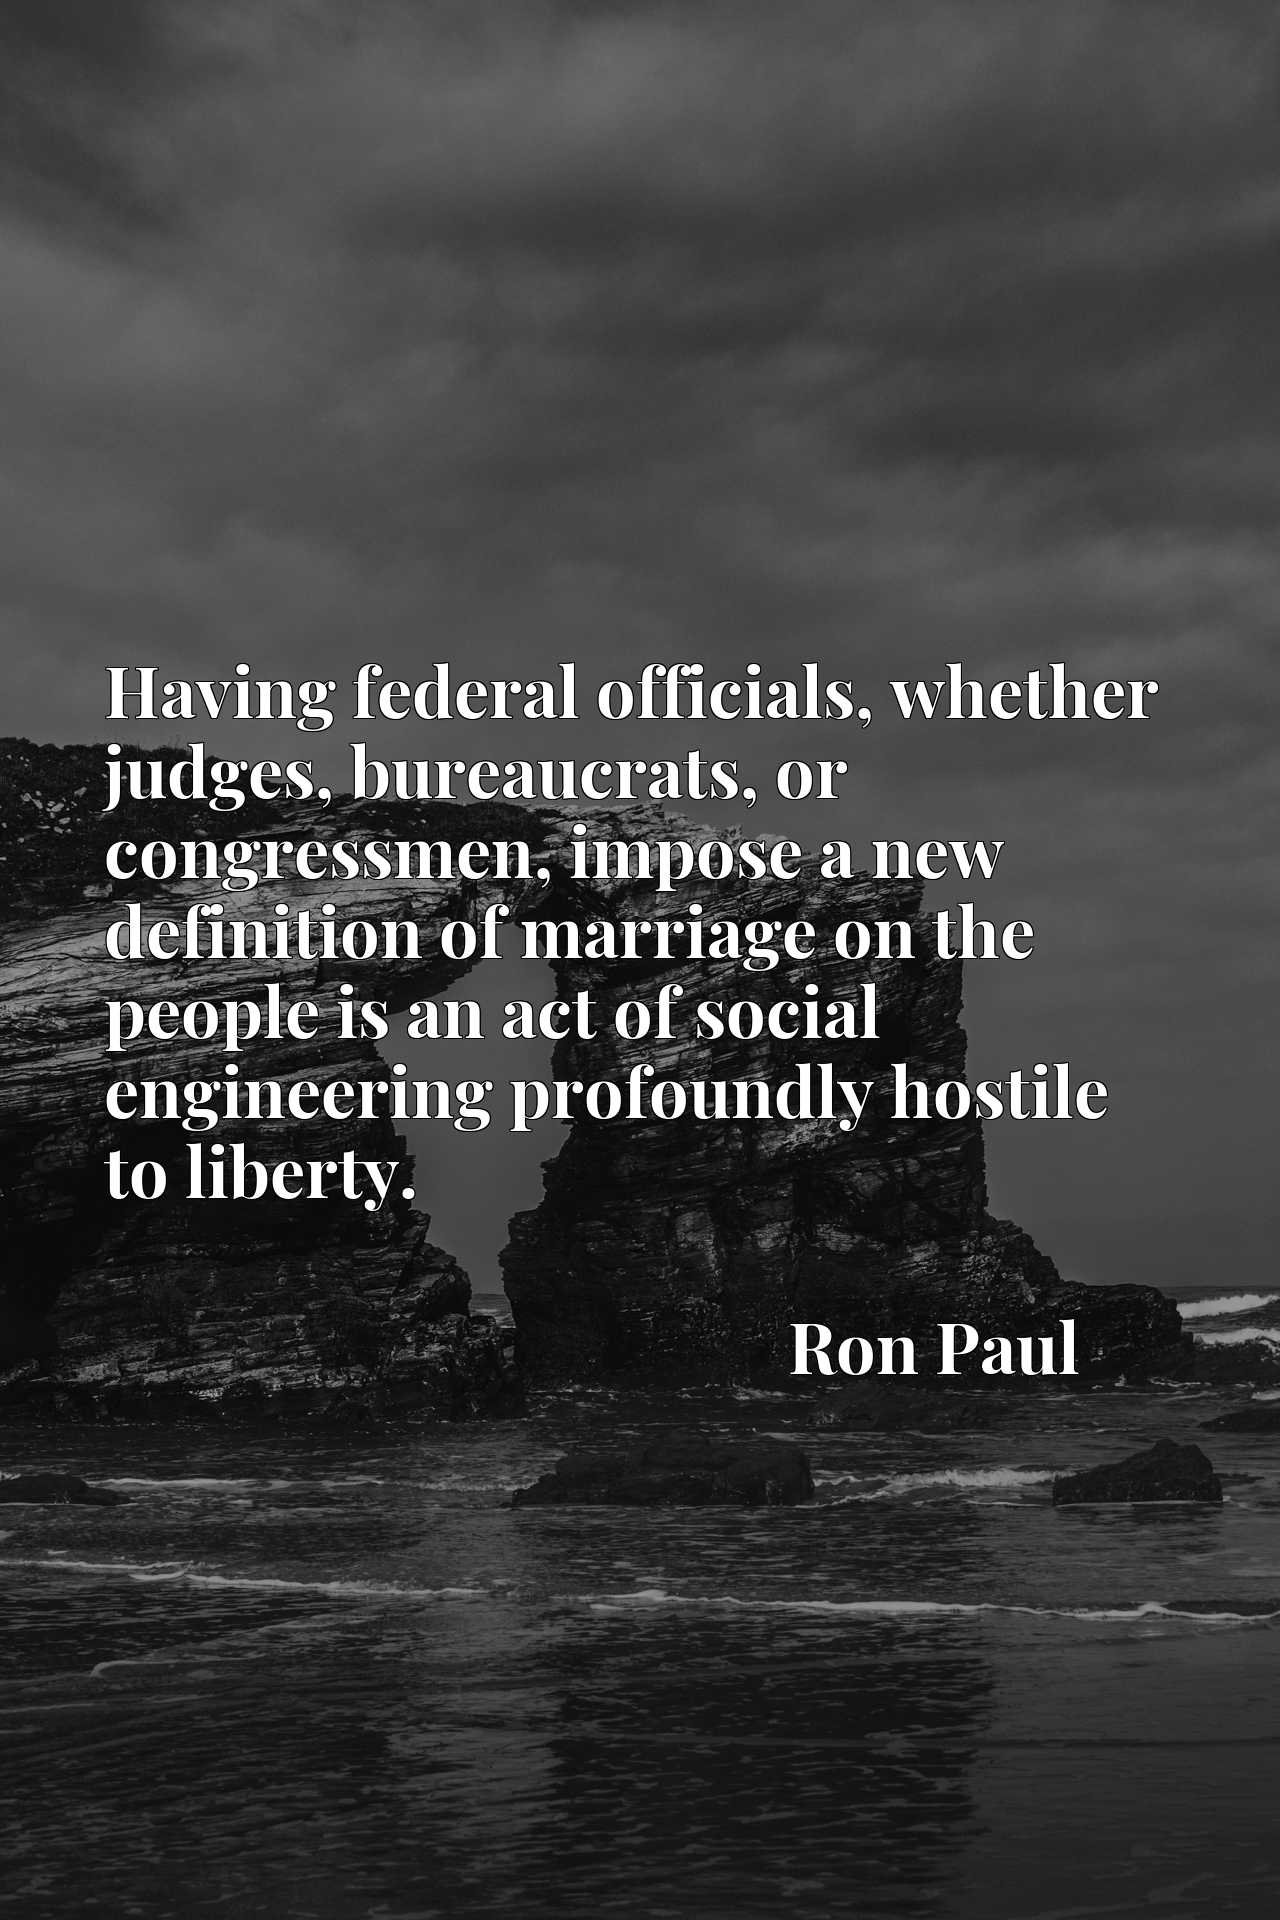 Quote Picture :Having federal officials, whether judges, bureaucrats, or congressmen, impose a new definition of marriage on the people is an act of social engineering profoundly hostile to liberty.